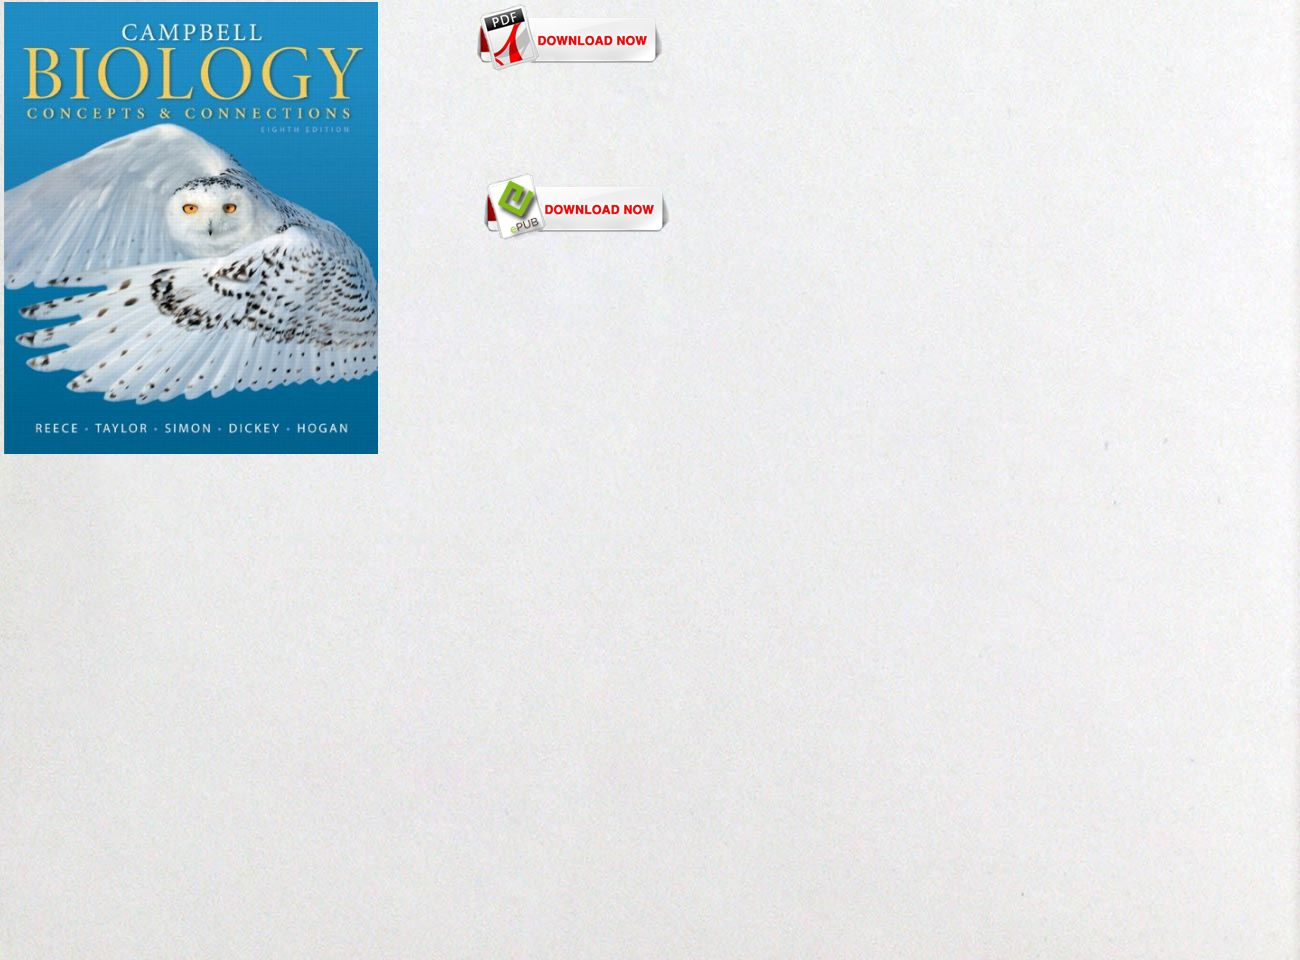 Free Download Pdf Ebook Campbell Biology Concepts Connections